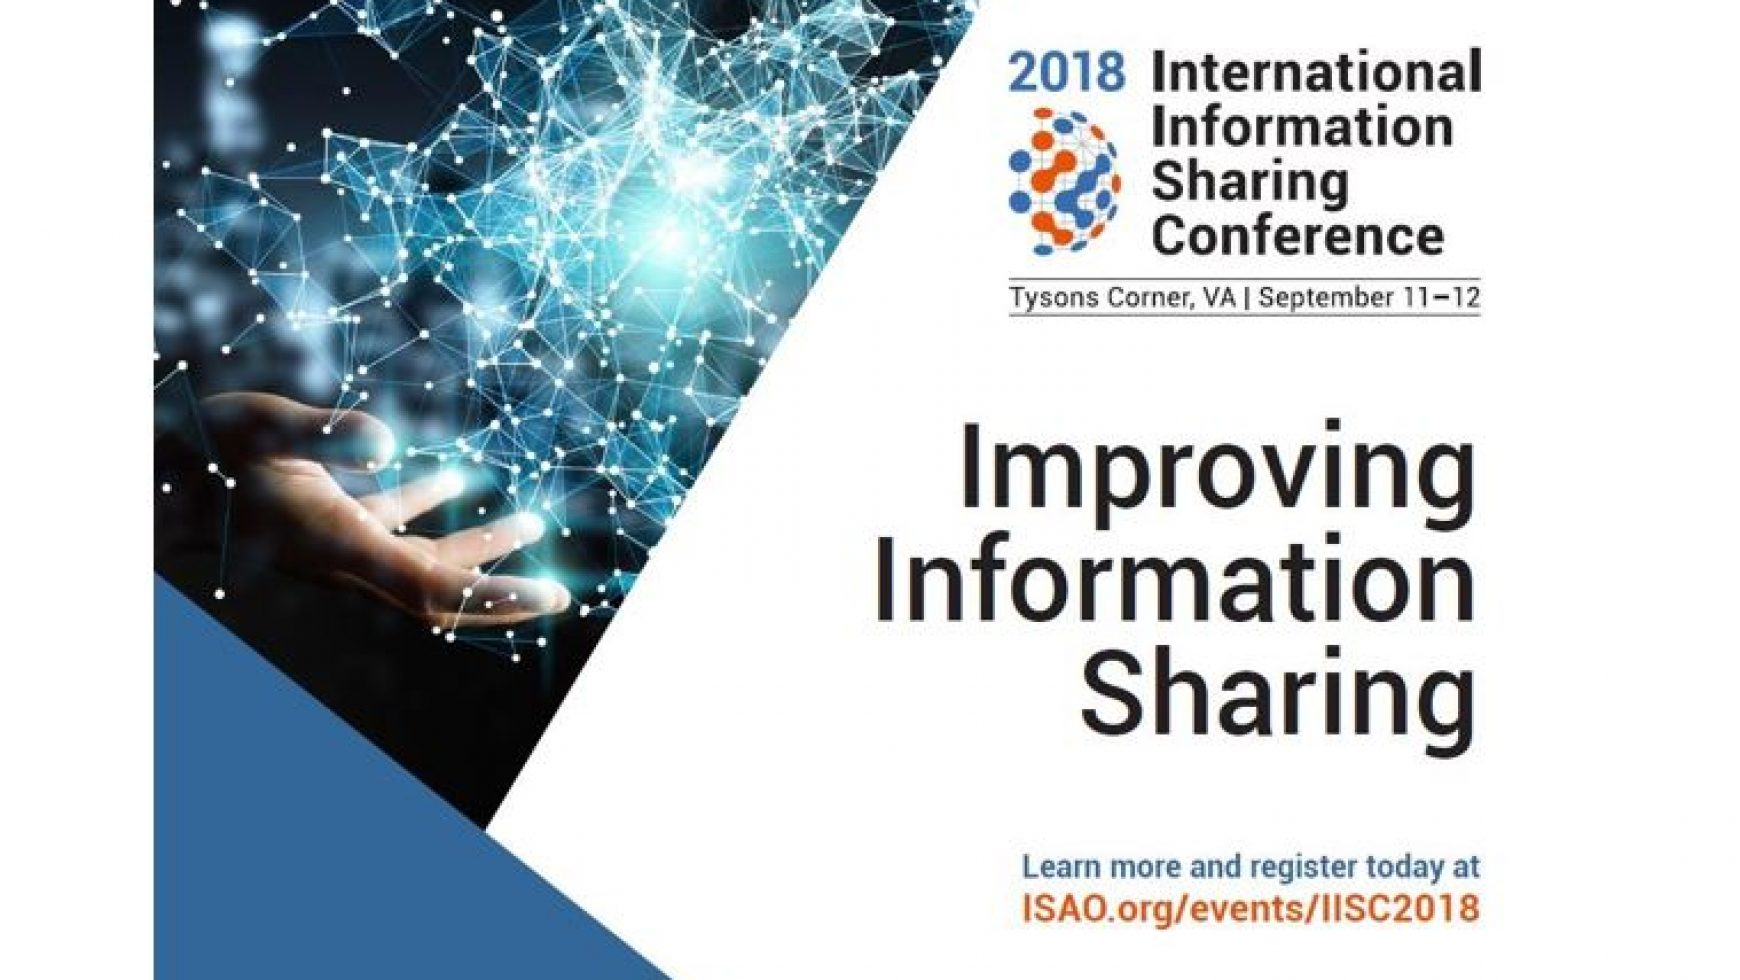 IISC 2018: You're Invited to Attend!